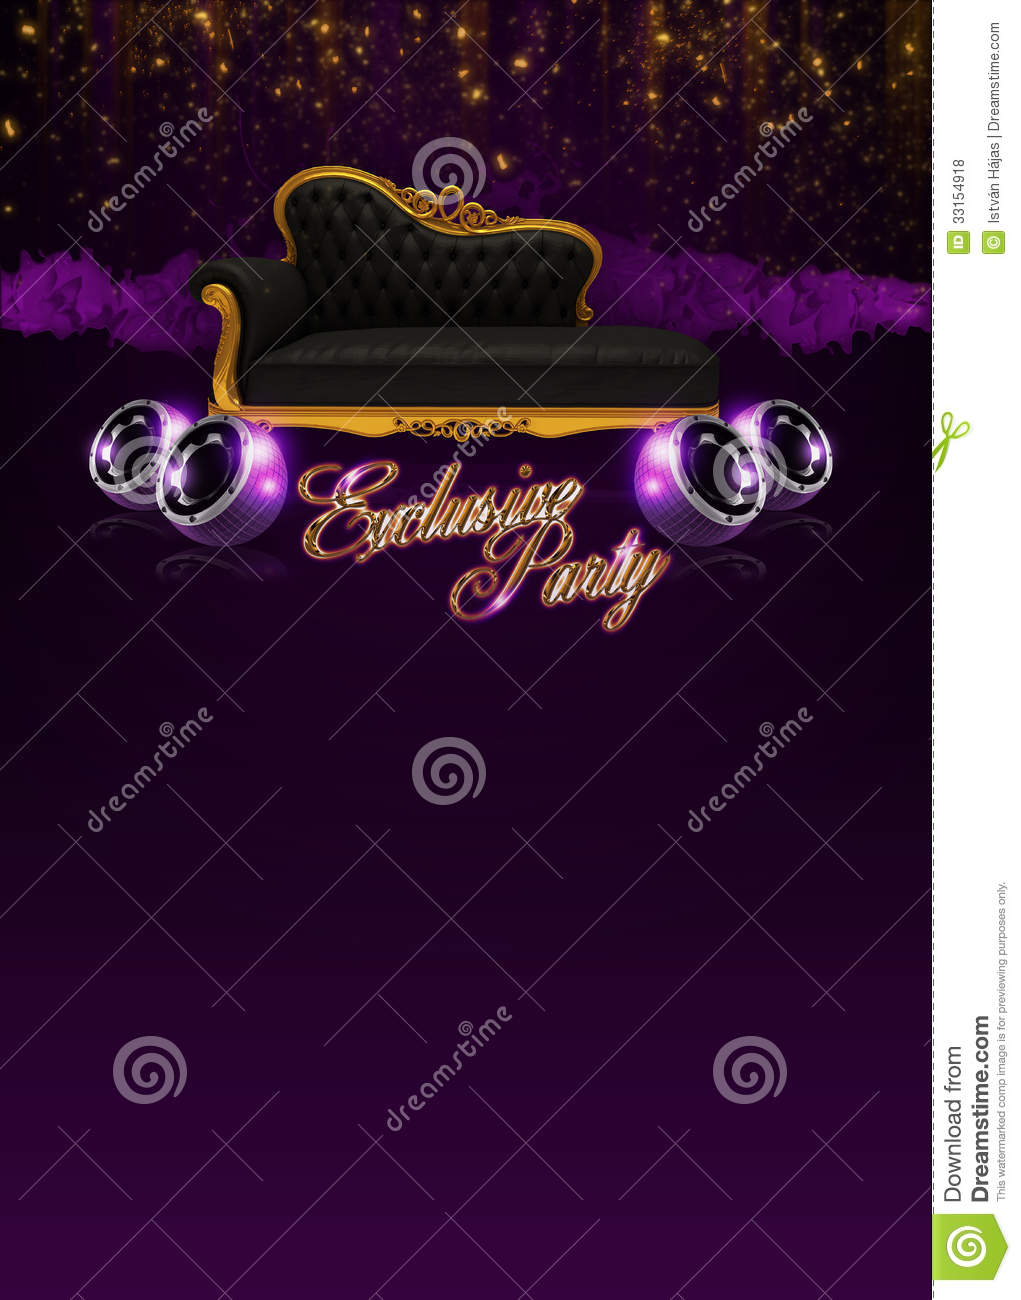 Abstract exclusive party invitation poster background with space.